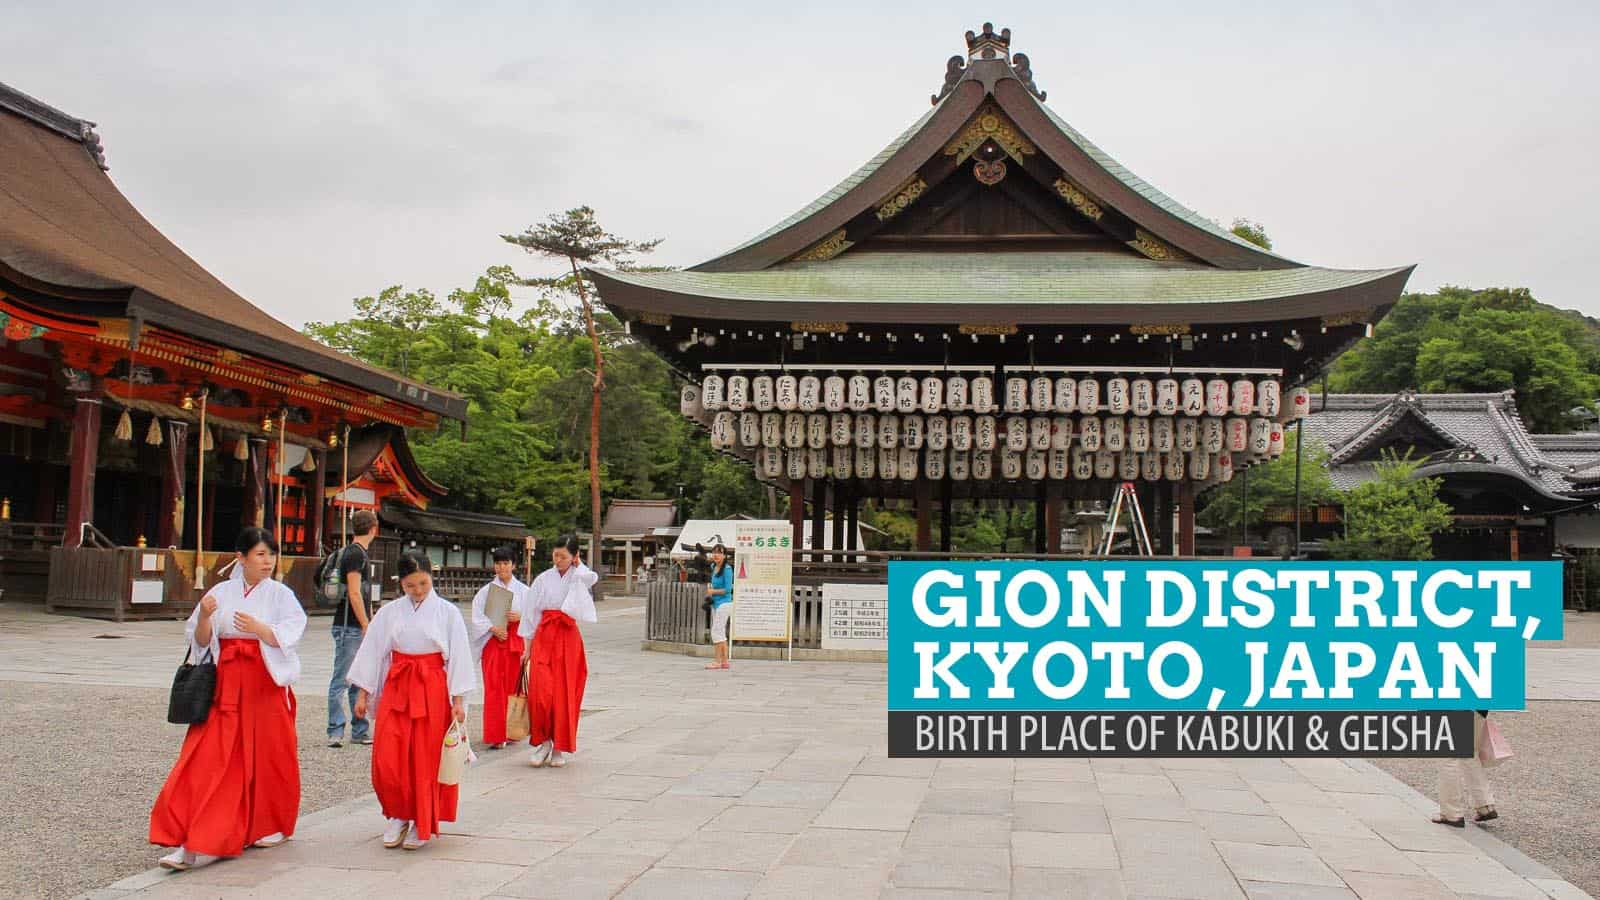 Gion District: The Birthplace of Kabuki and Geisha in Kyoto, Japan  The Poor...